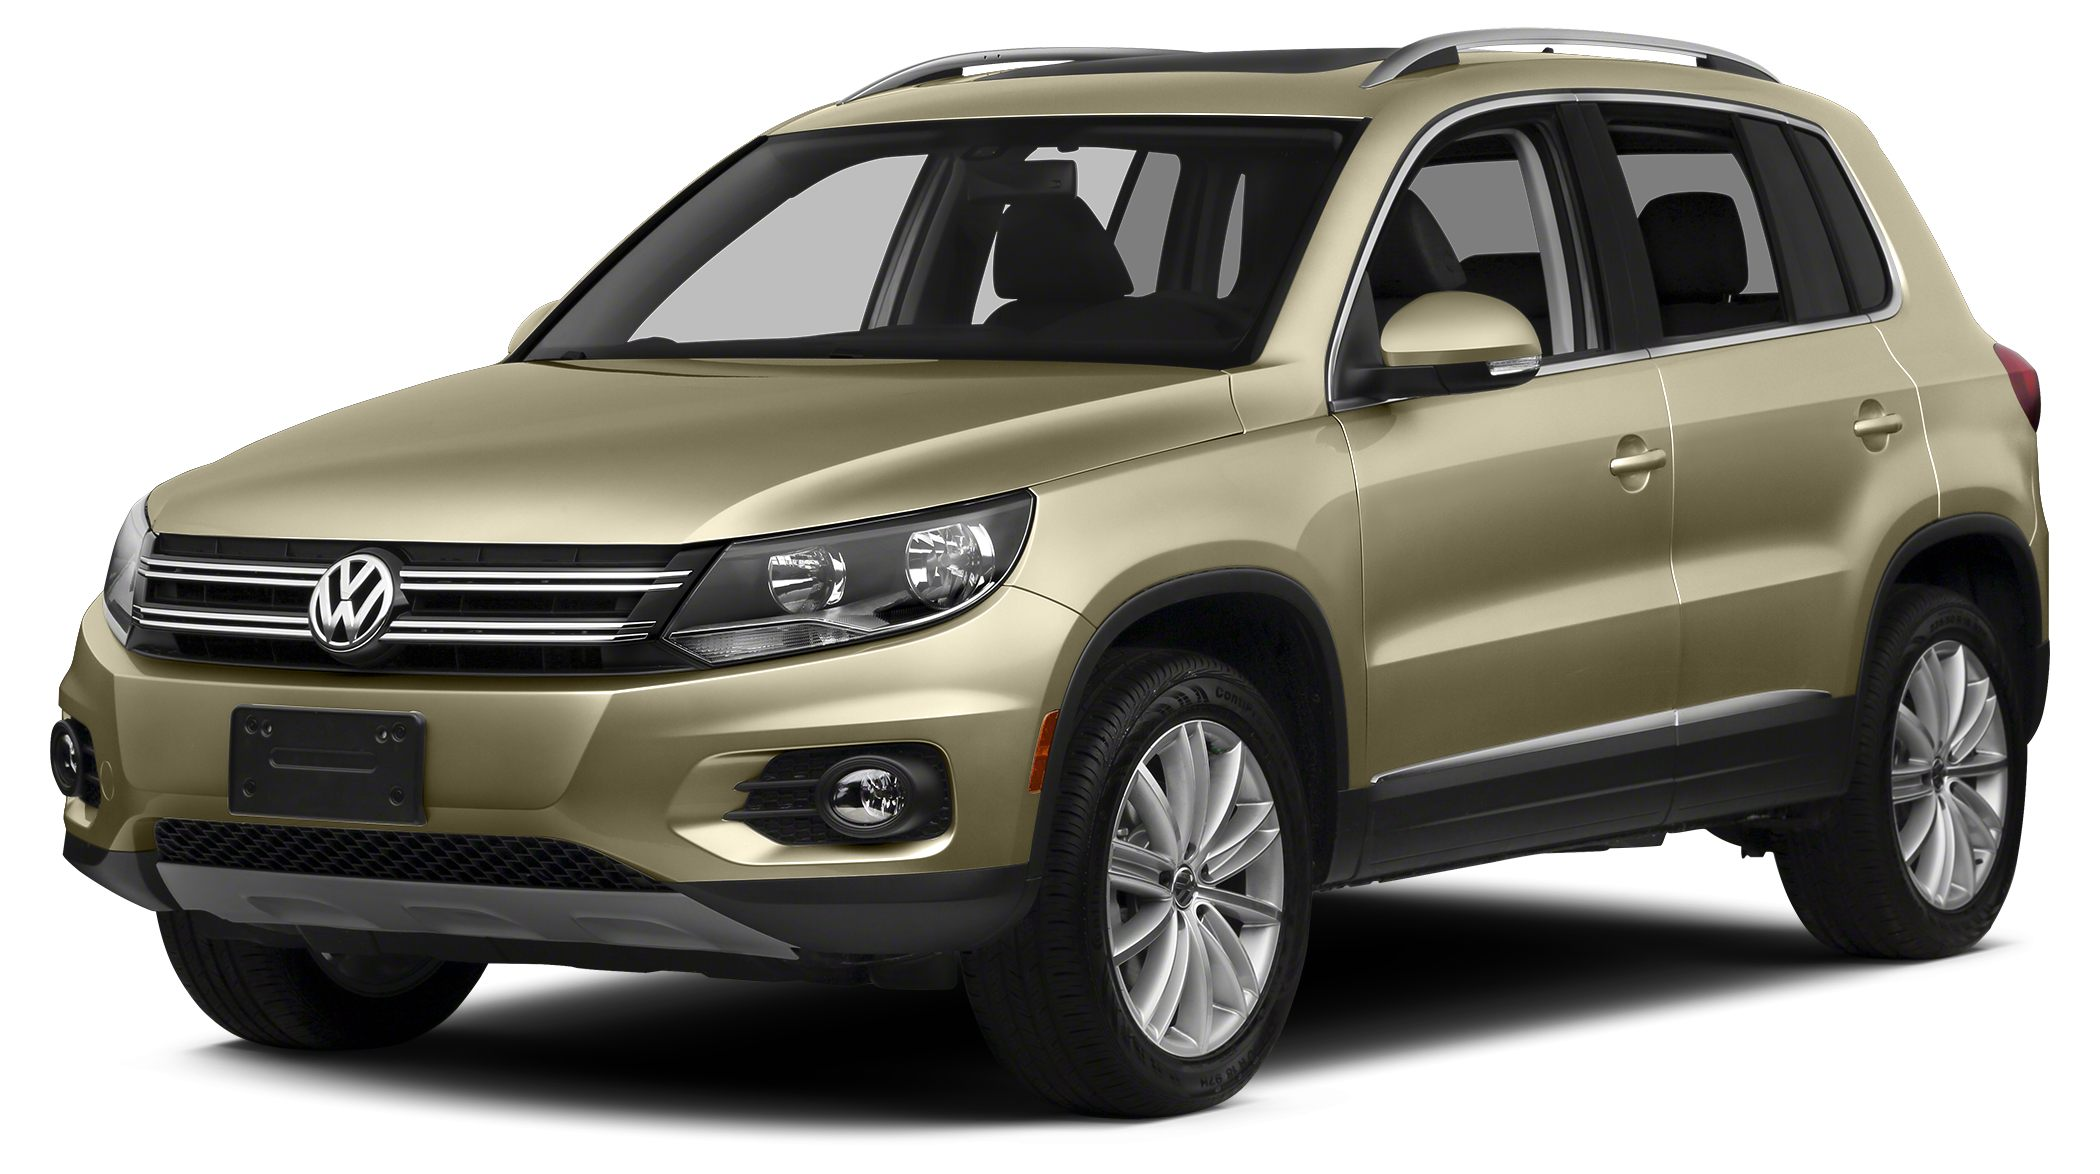 2013 Volkswagen Tiguan  Snag a bargain on this 2013 Volkswagen Tiguan before someone else takes it